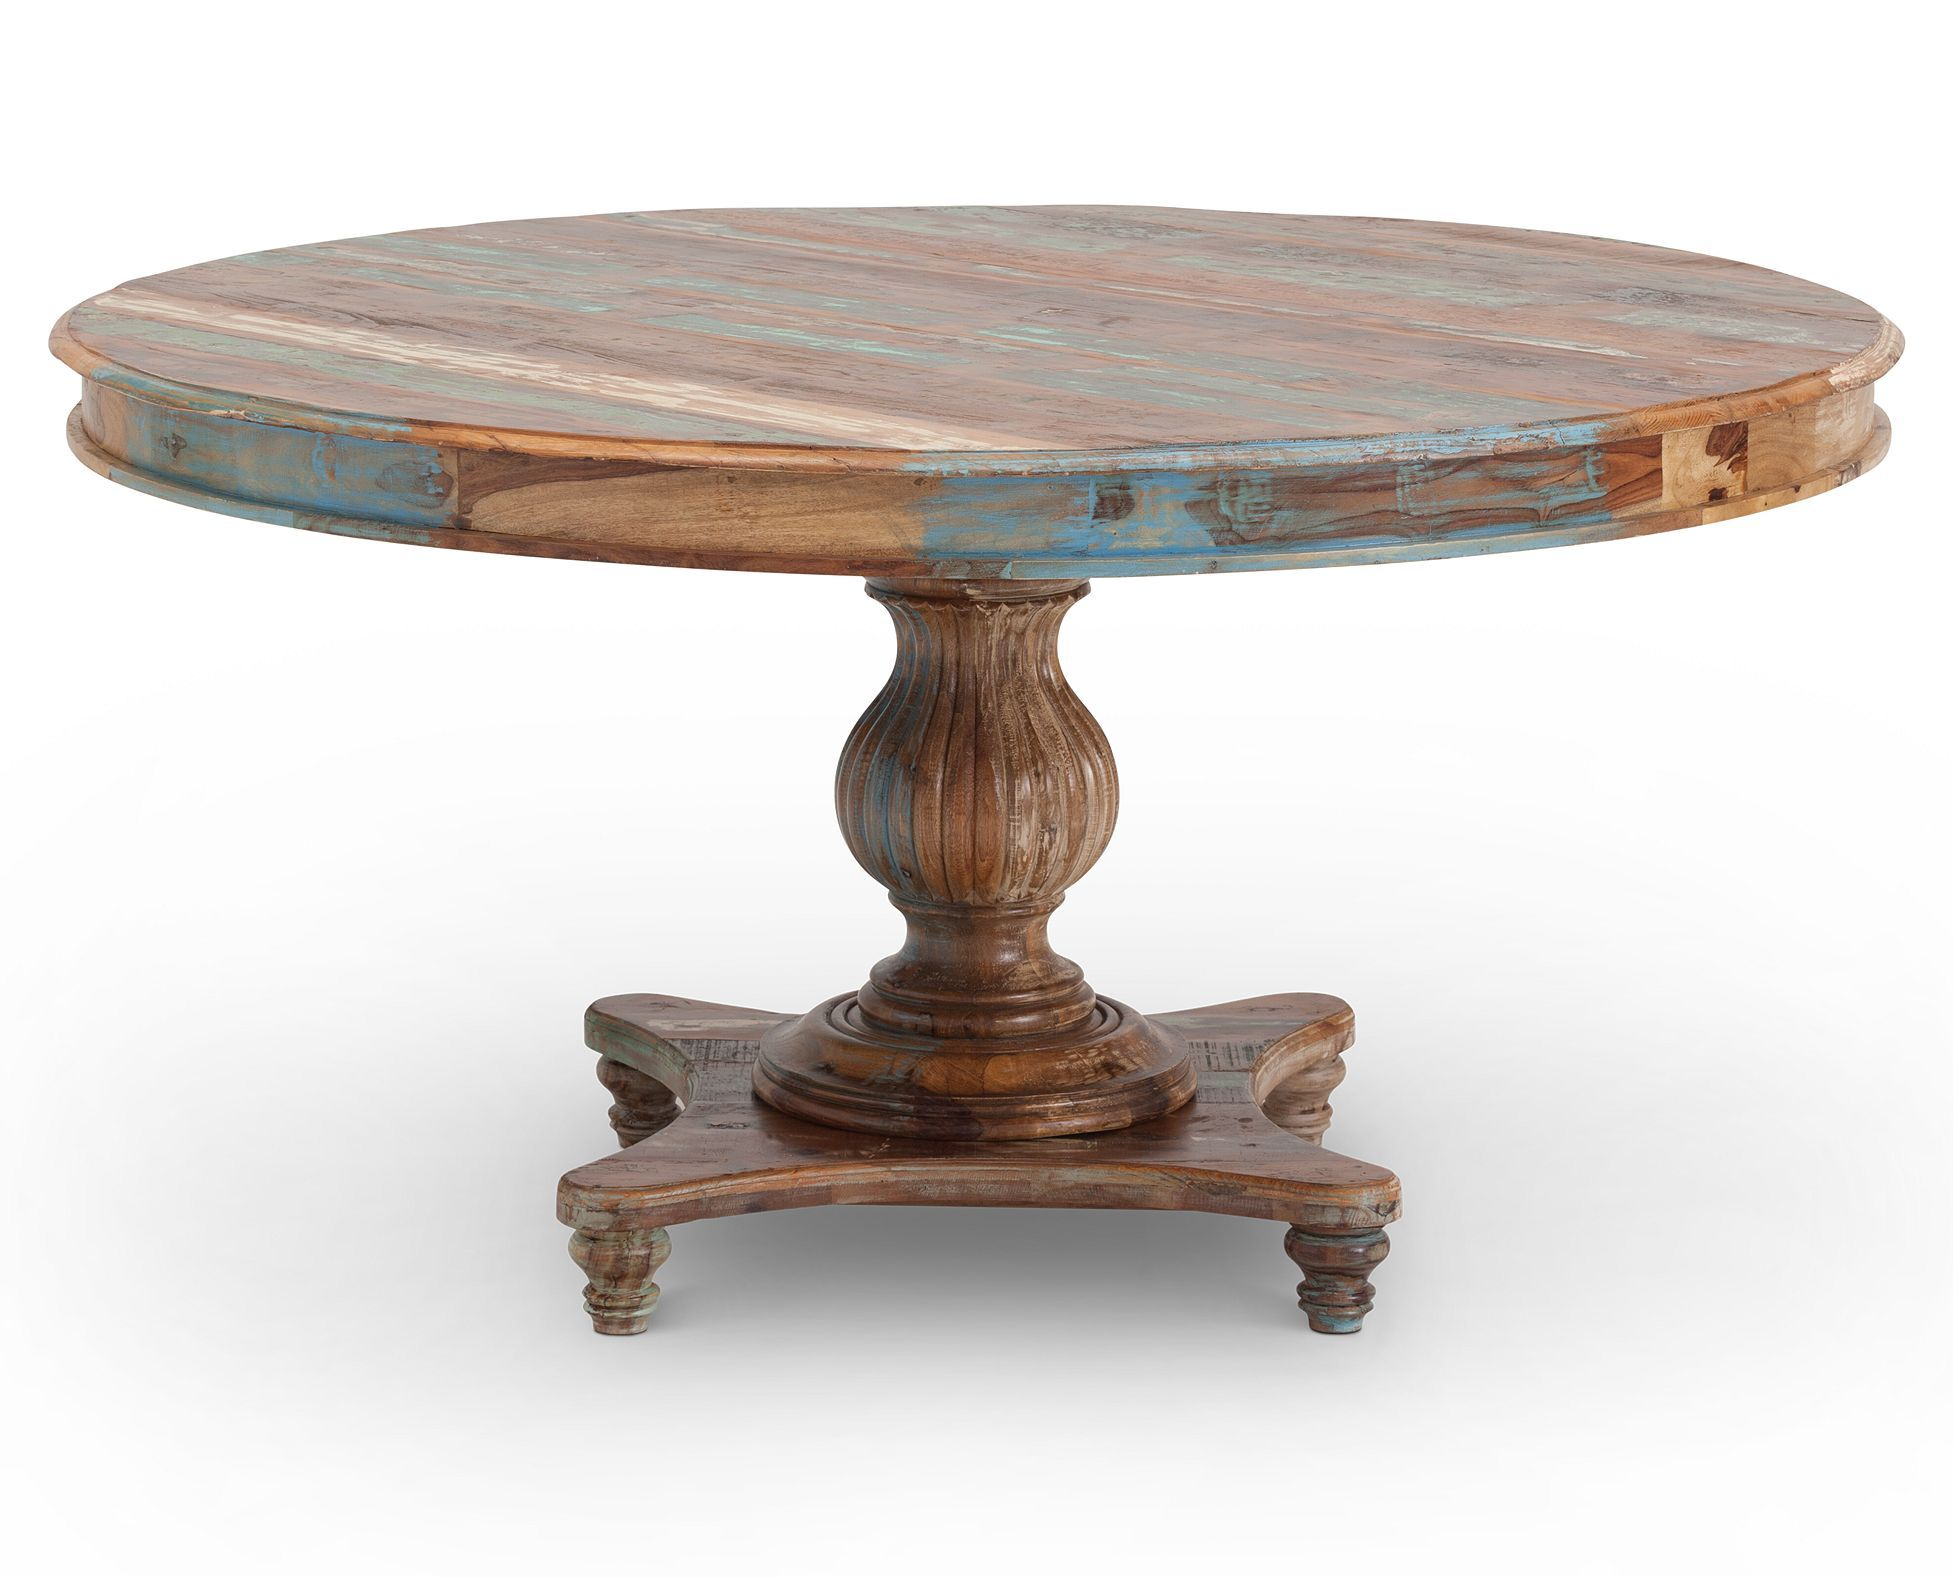 Rainforest Round Dining Table Dining Table Round Dining Round Dining Table Furniture